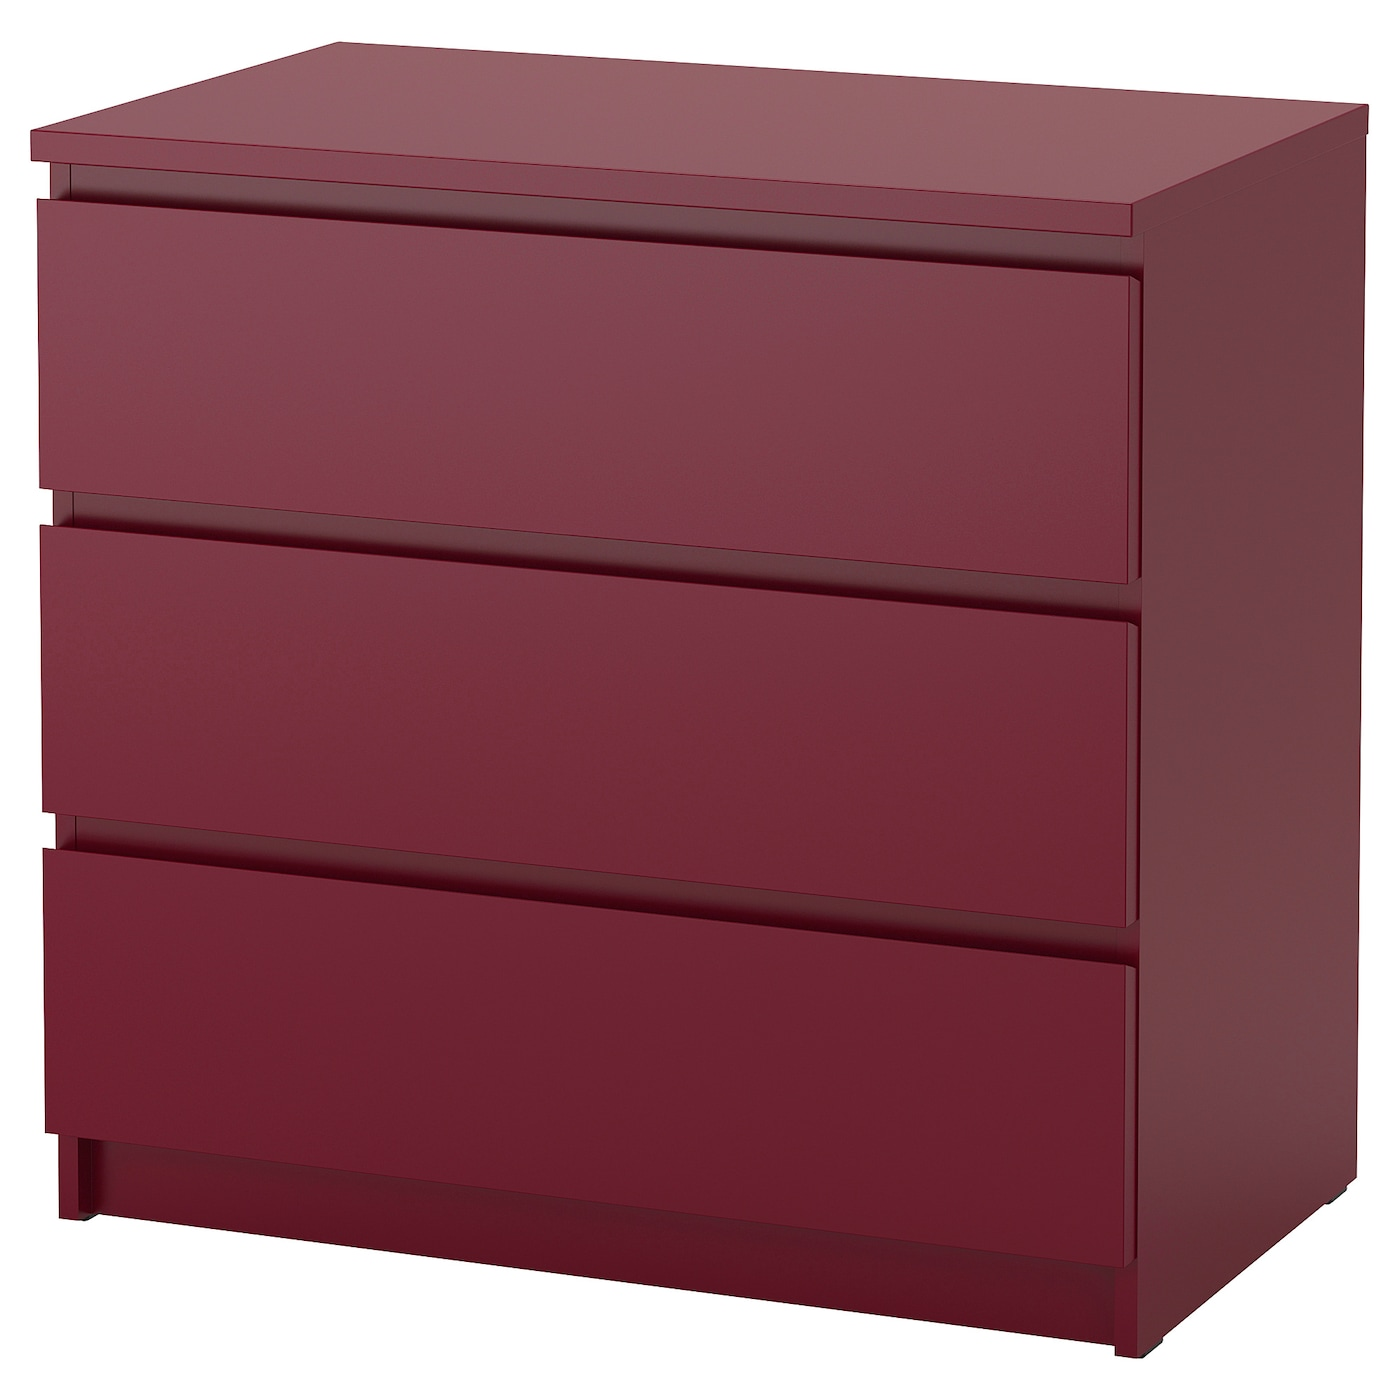 chest of drawers dressers ikea dublin ireland